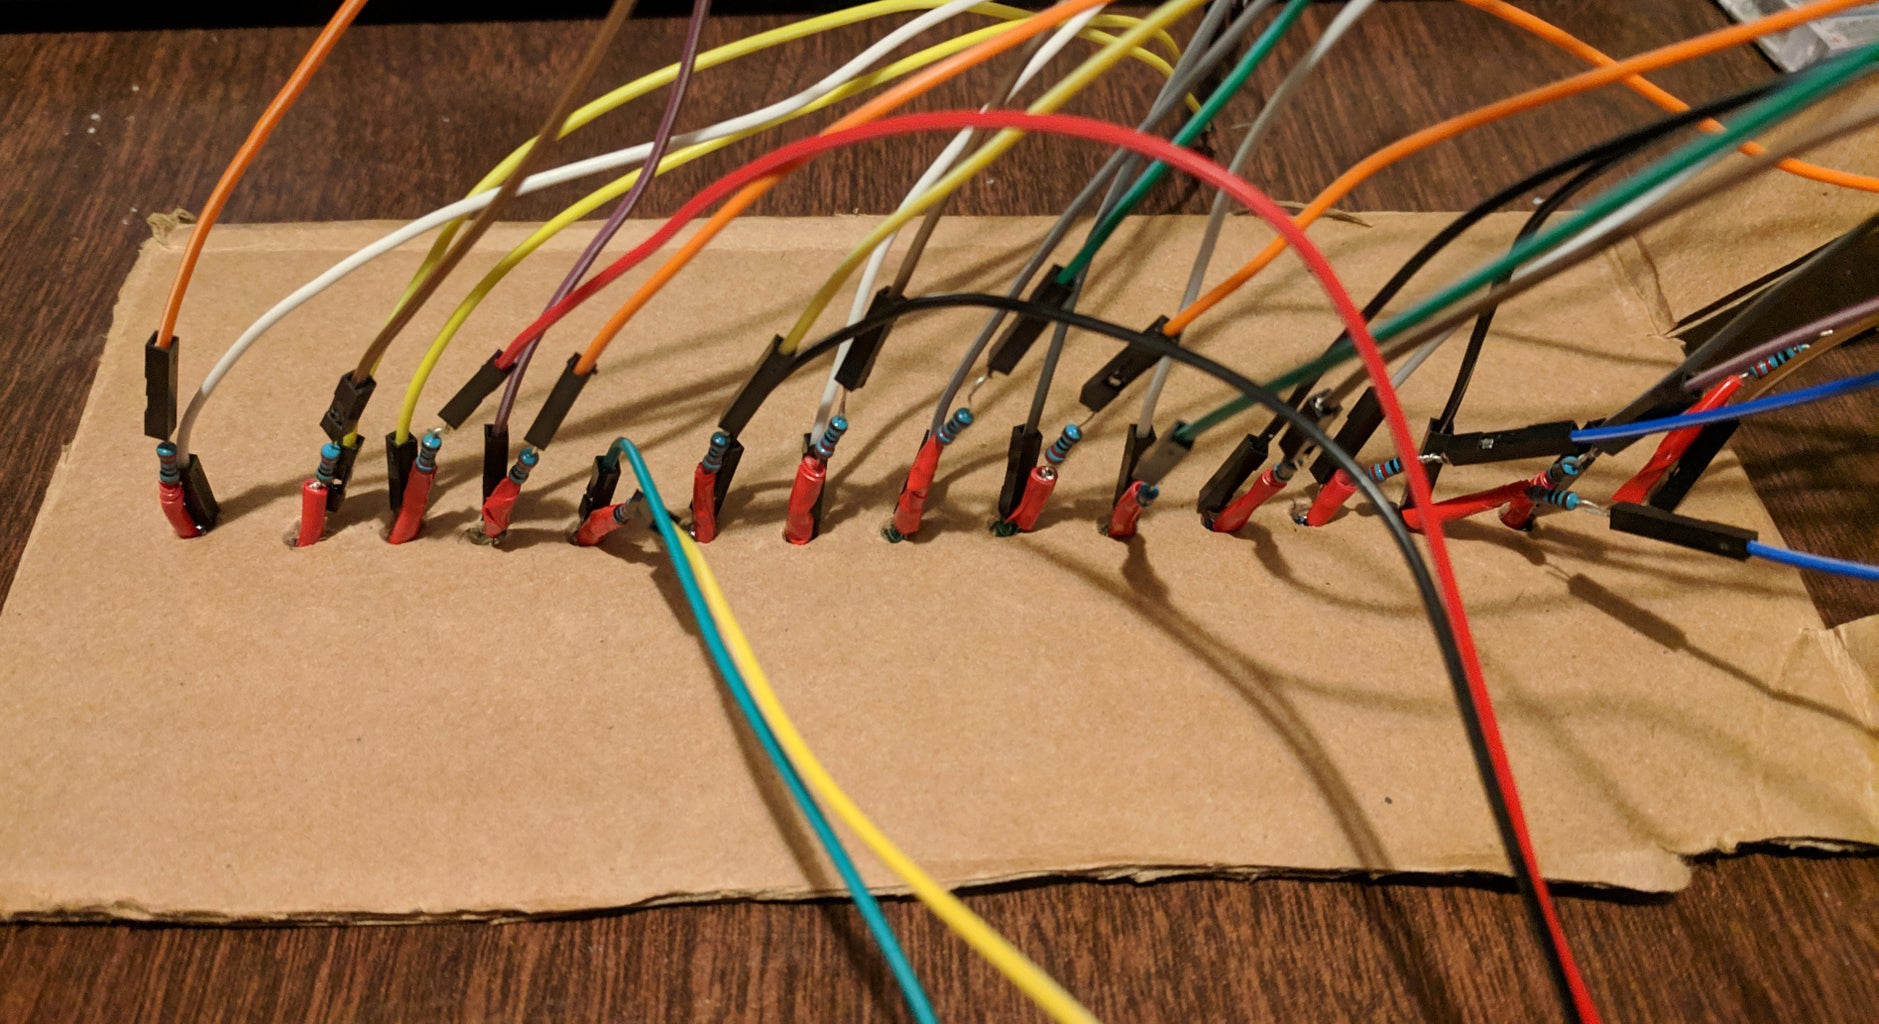 Wiring and Coding!